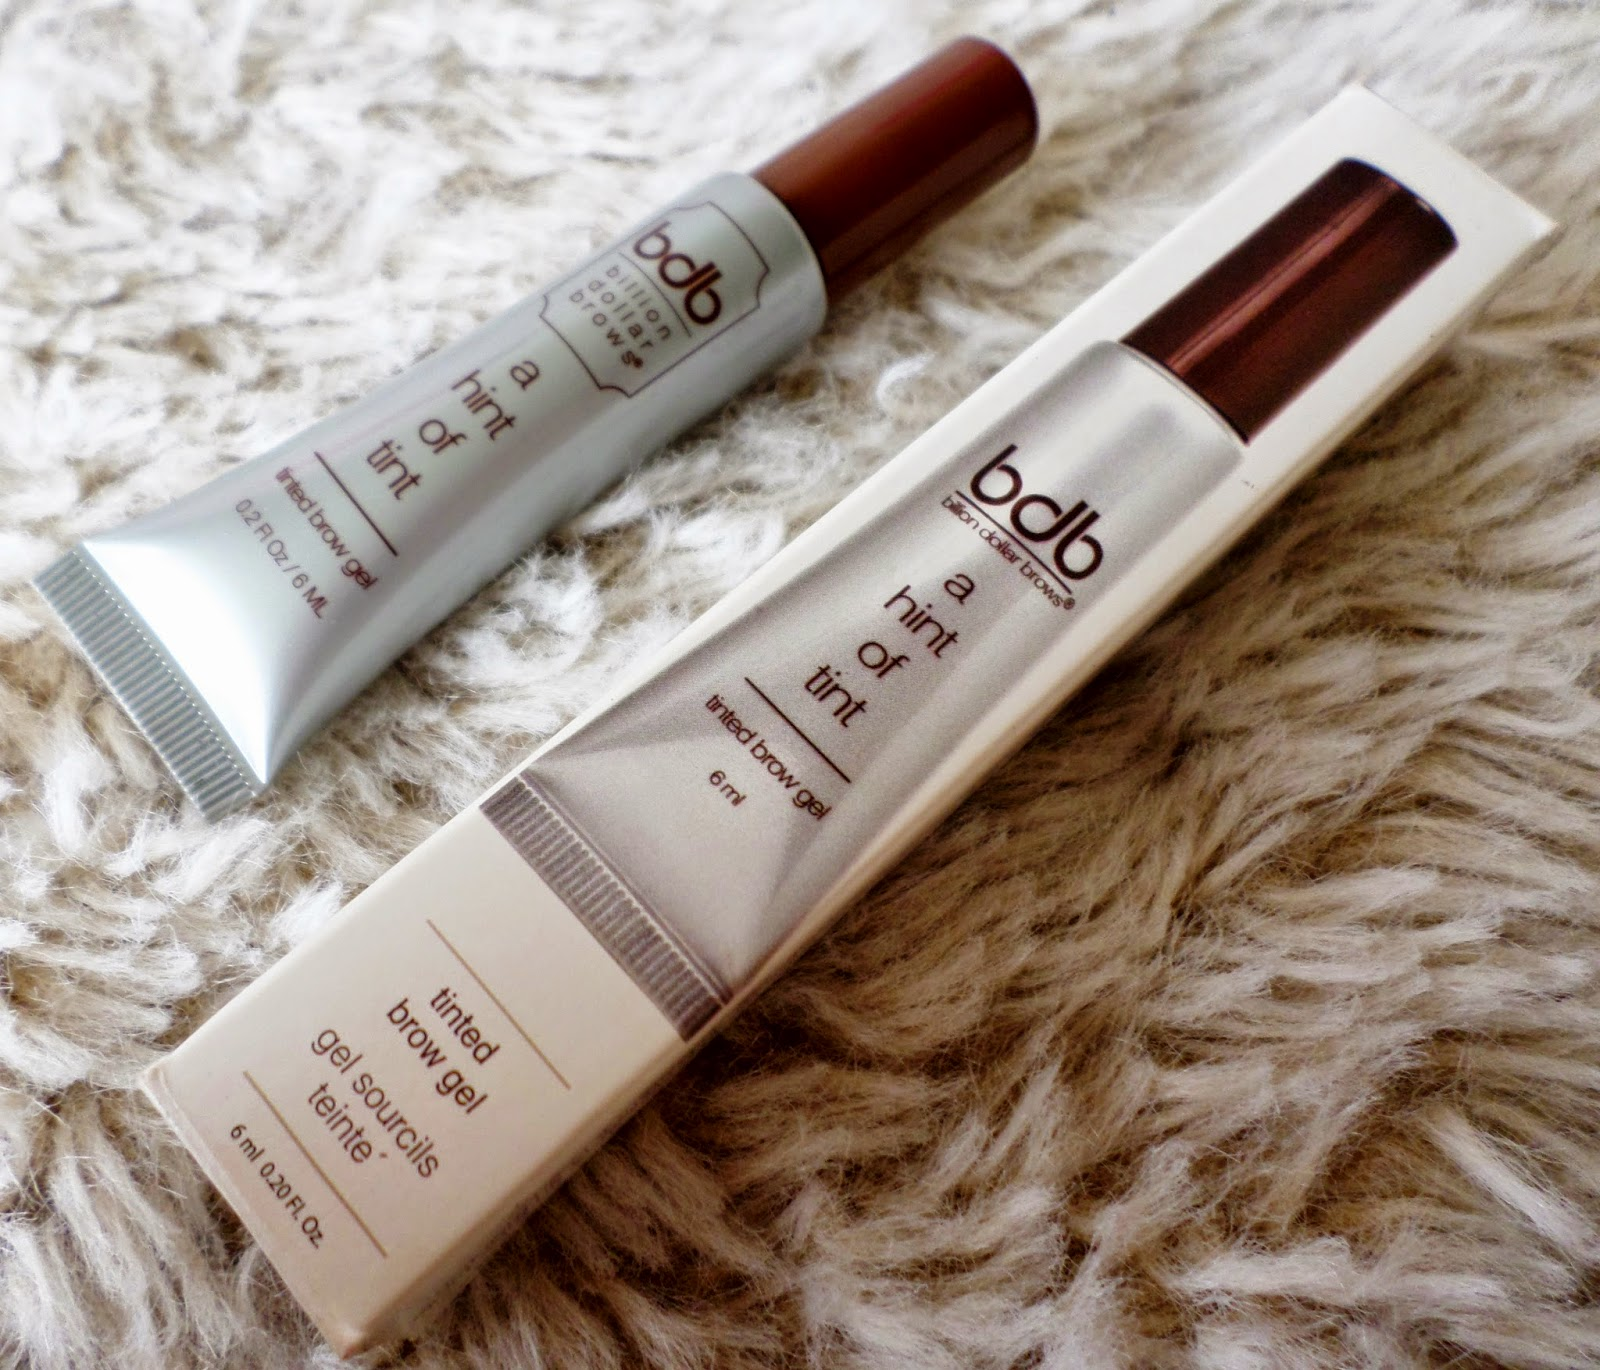 Billion Dollar Brows Hint of Tint Tinted Brow Gel in Blonde Review